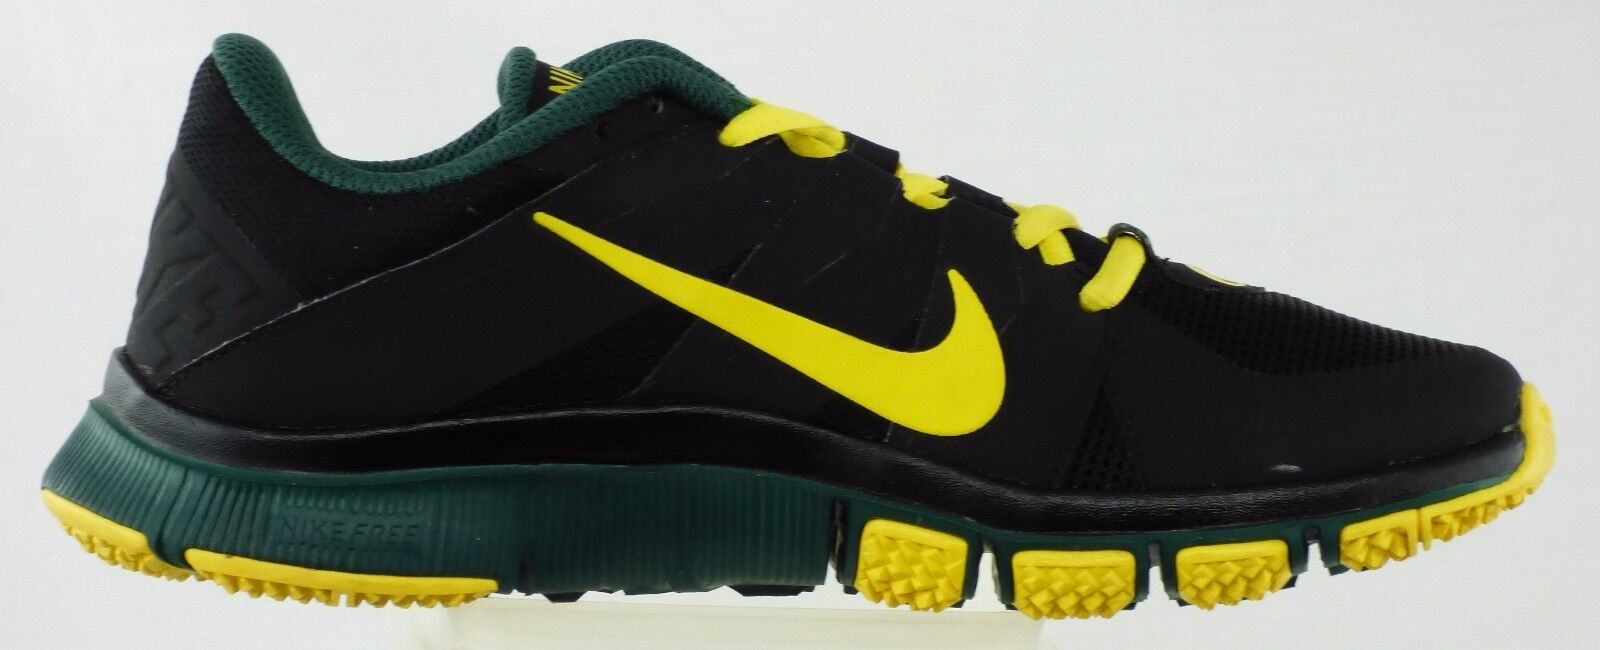 PROMO SAMPLE NIKE OREGON DUCKS 5.0 TRAINER V3 MEN SIZE 6 BLACK GREEN